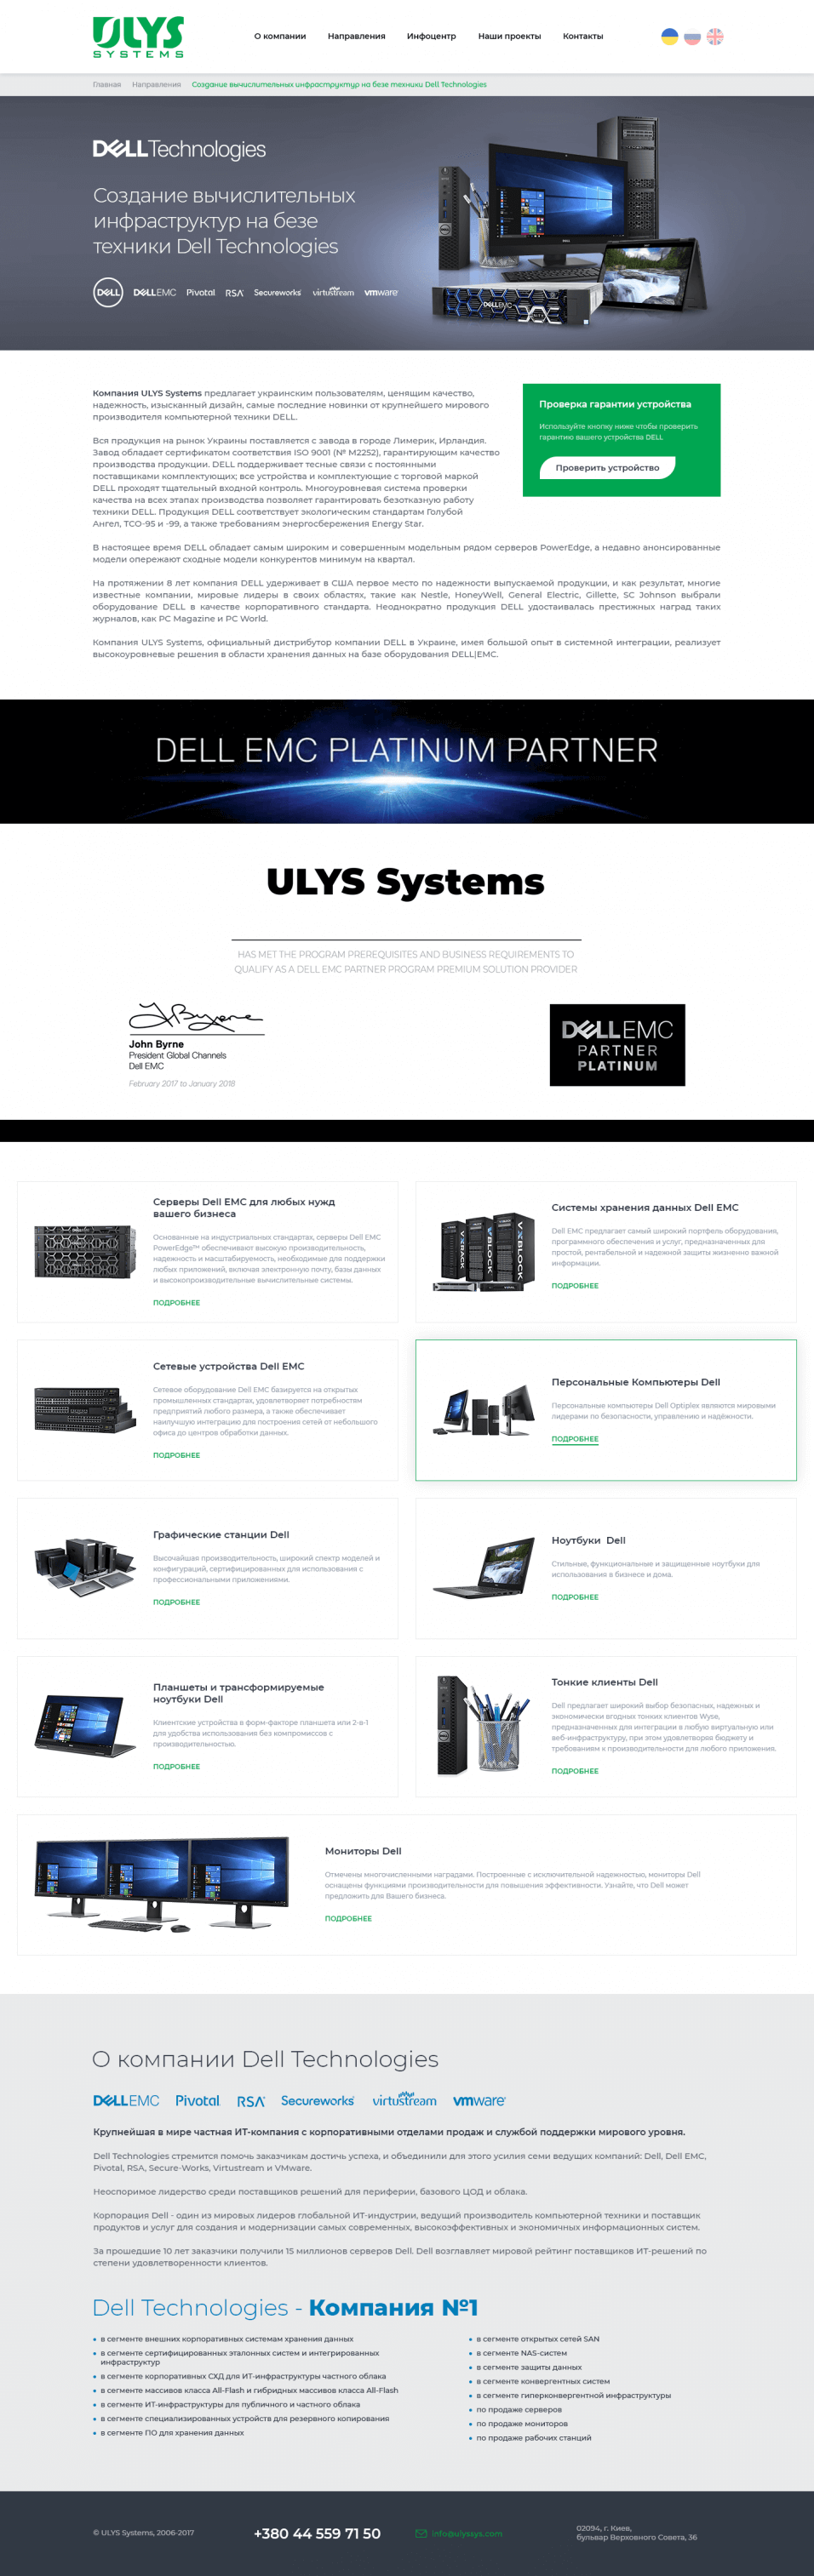 ULYS Systems Dell